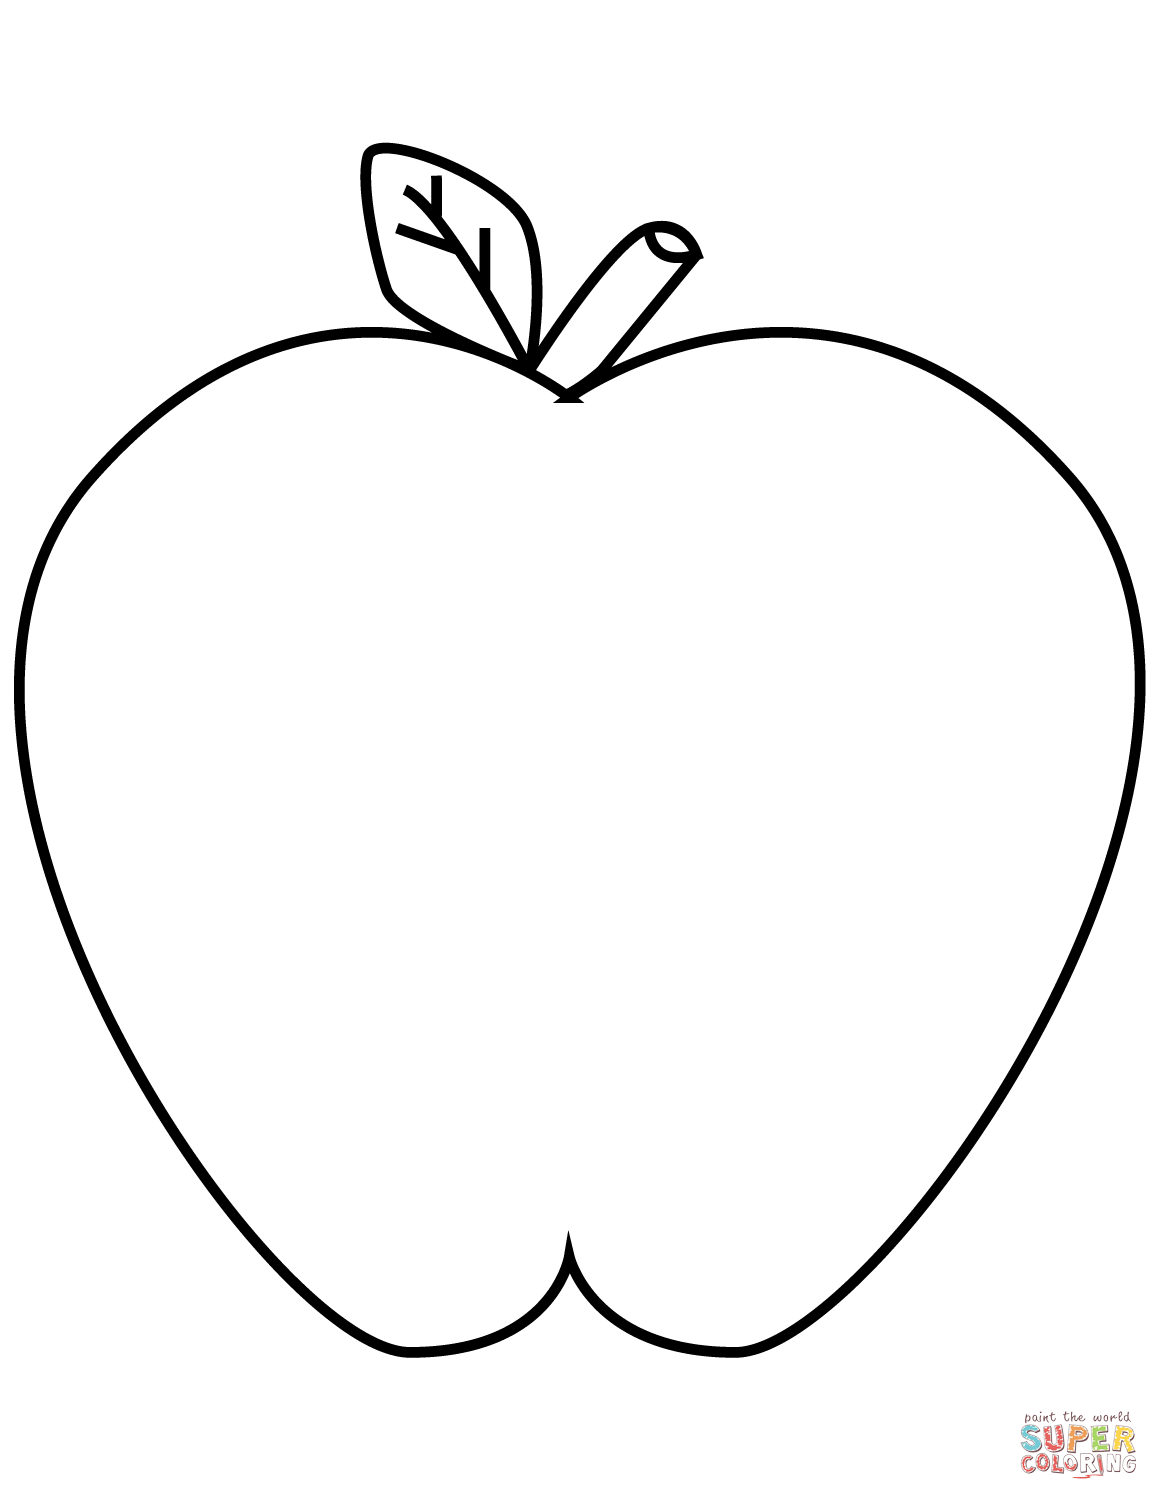 Apples coloring pages.